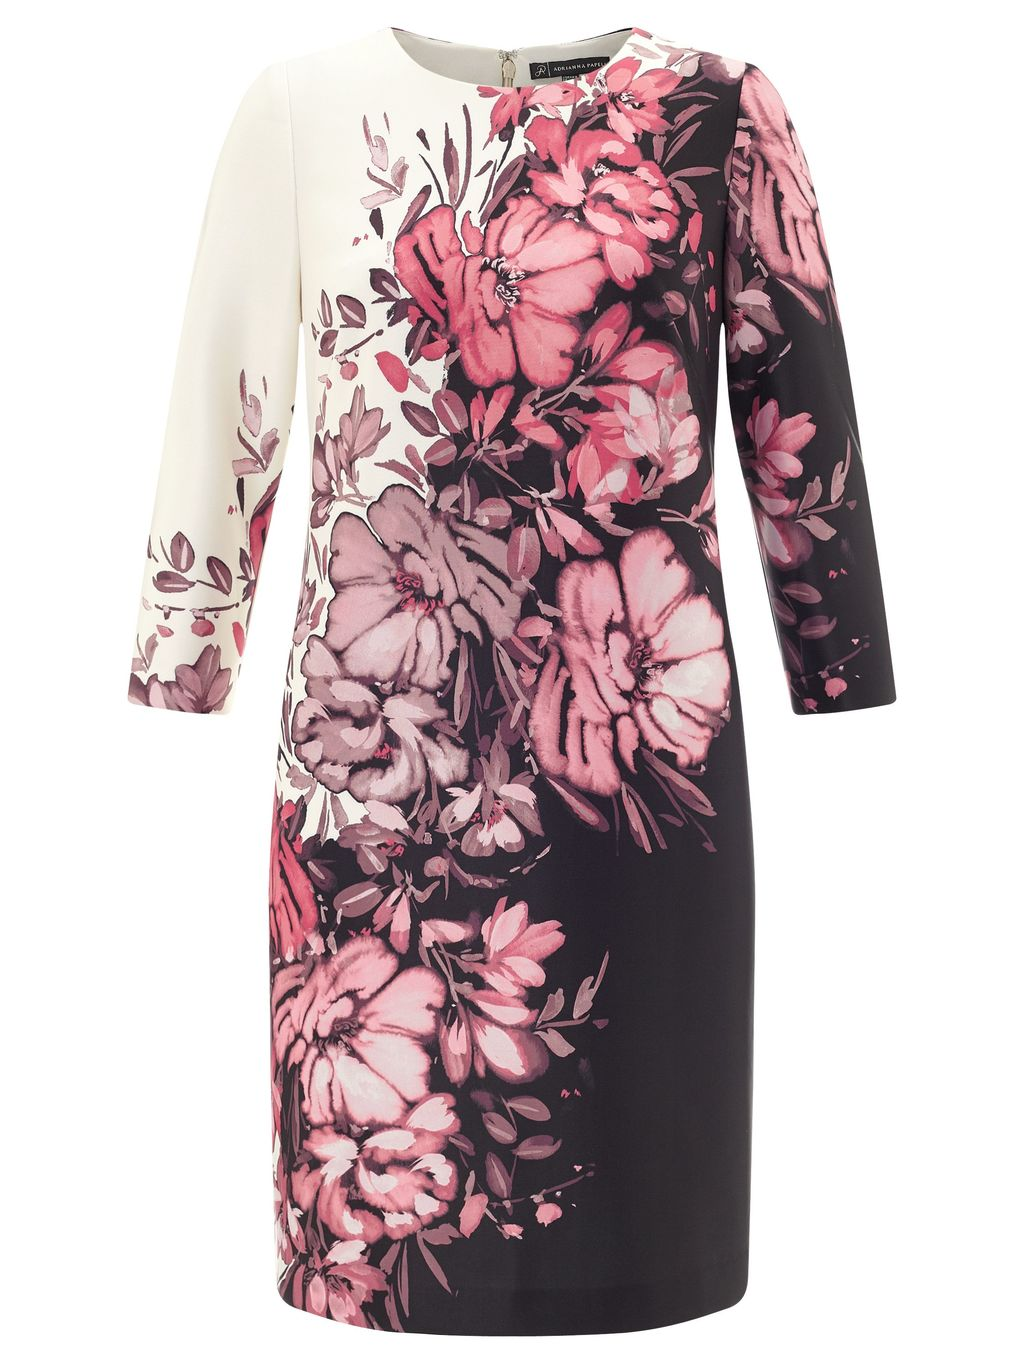 Black And Pink Floral Dress, Multi Coloured - style: shift; predominant colour: pink; secondary colour: pink; length: just above the knee; fit: body skimming; fibres: polyester/polyamide - 100%; occasions: occasion; neckline: crew; sleeve length: 3/4 length; sleeve style: standard; pattern type: fabric; pattern size: big & busy; pattern: florals; texture group: other - light to midweight; multicoloured: multicoloured; season: a/w 2015; wardrobe: event